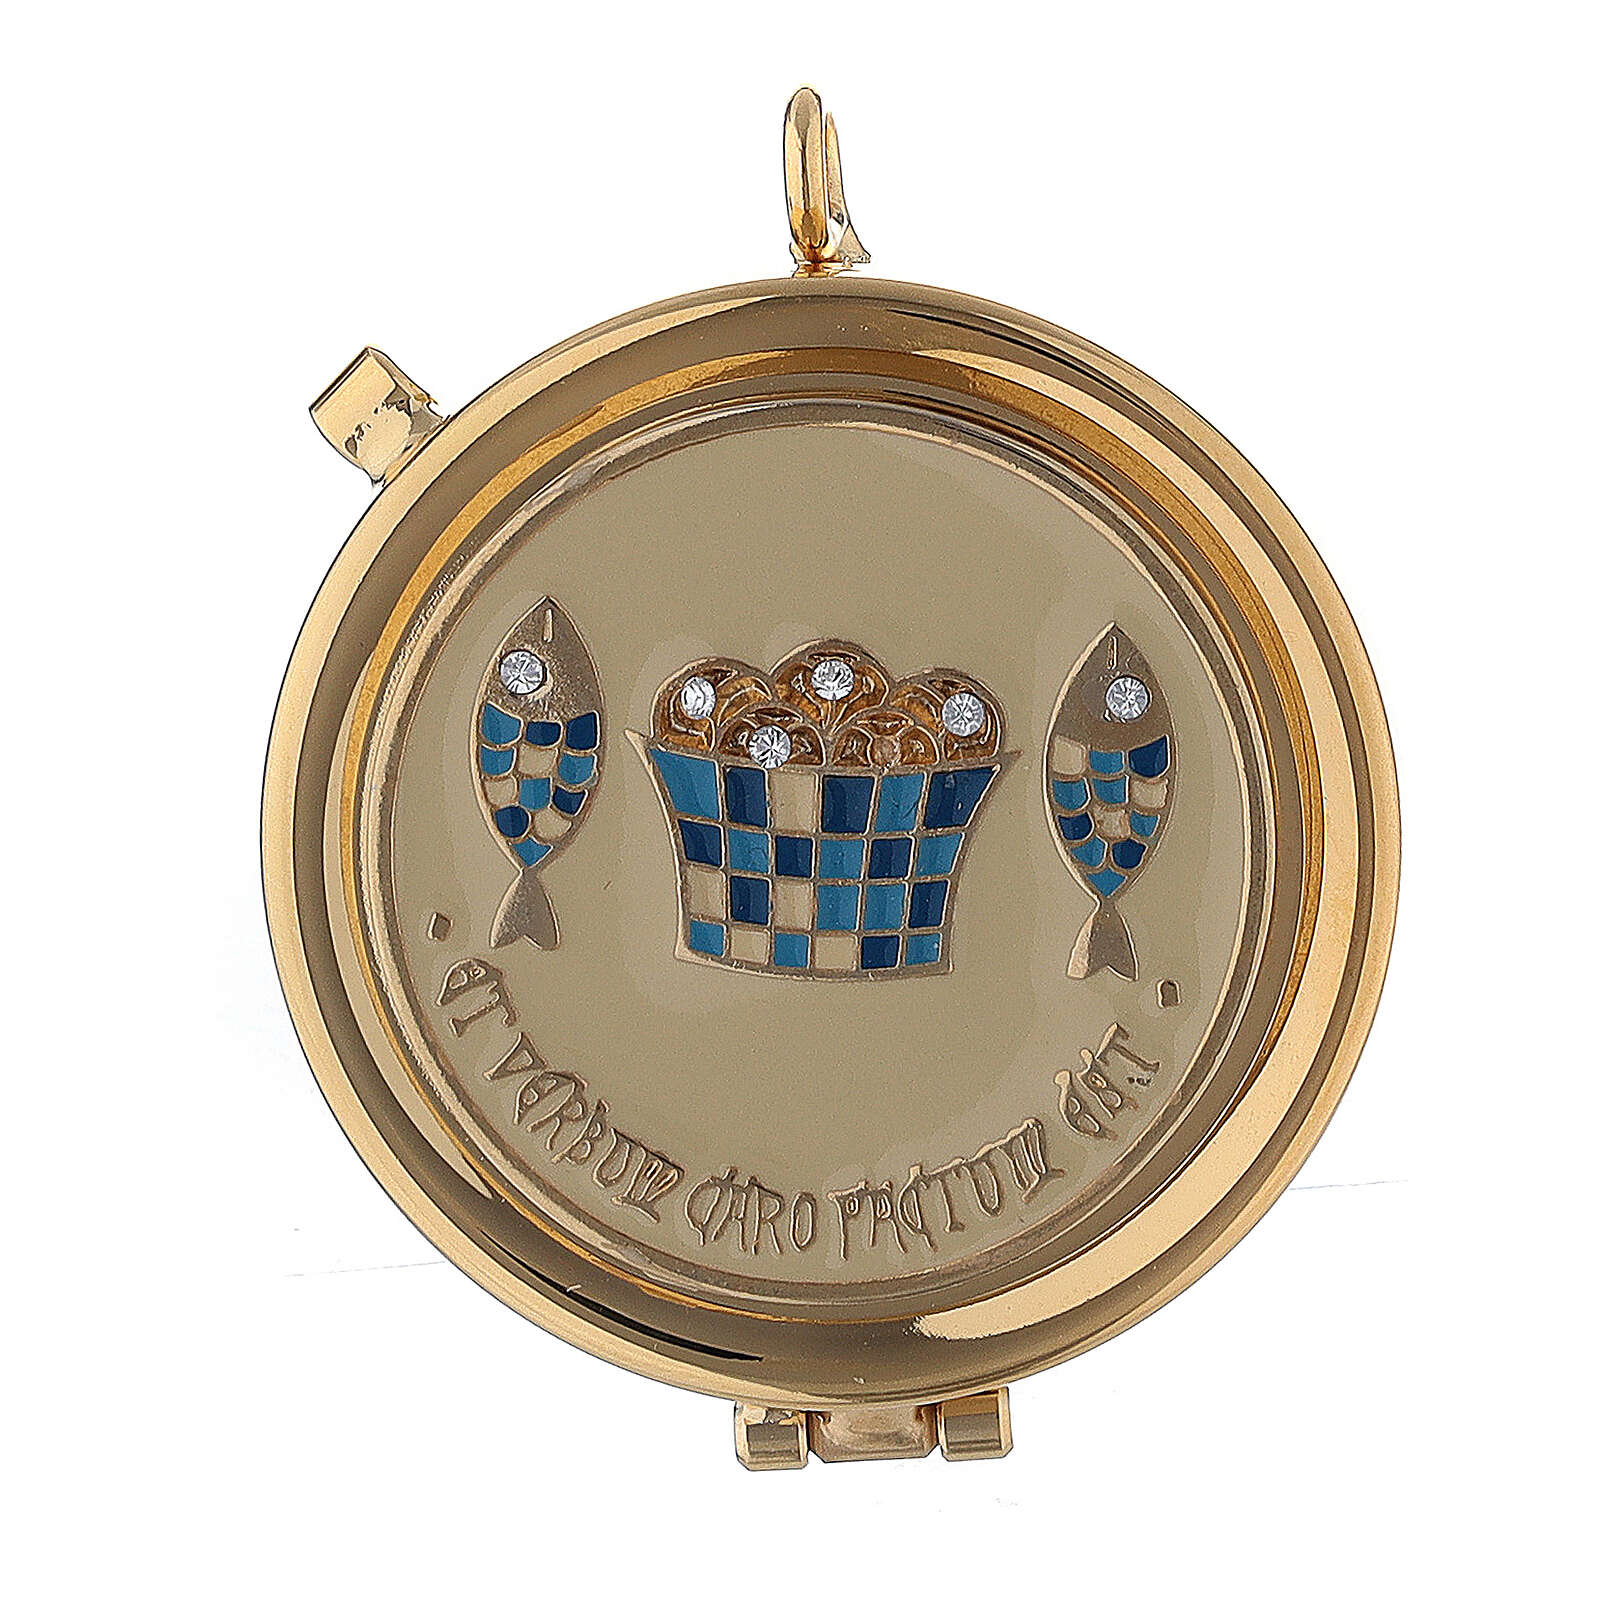 Enamelled pyx with loaves and fish engraving 2 in diameter 3